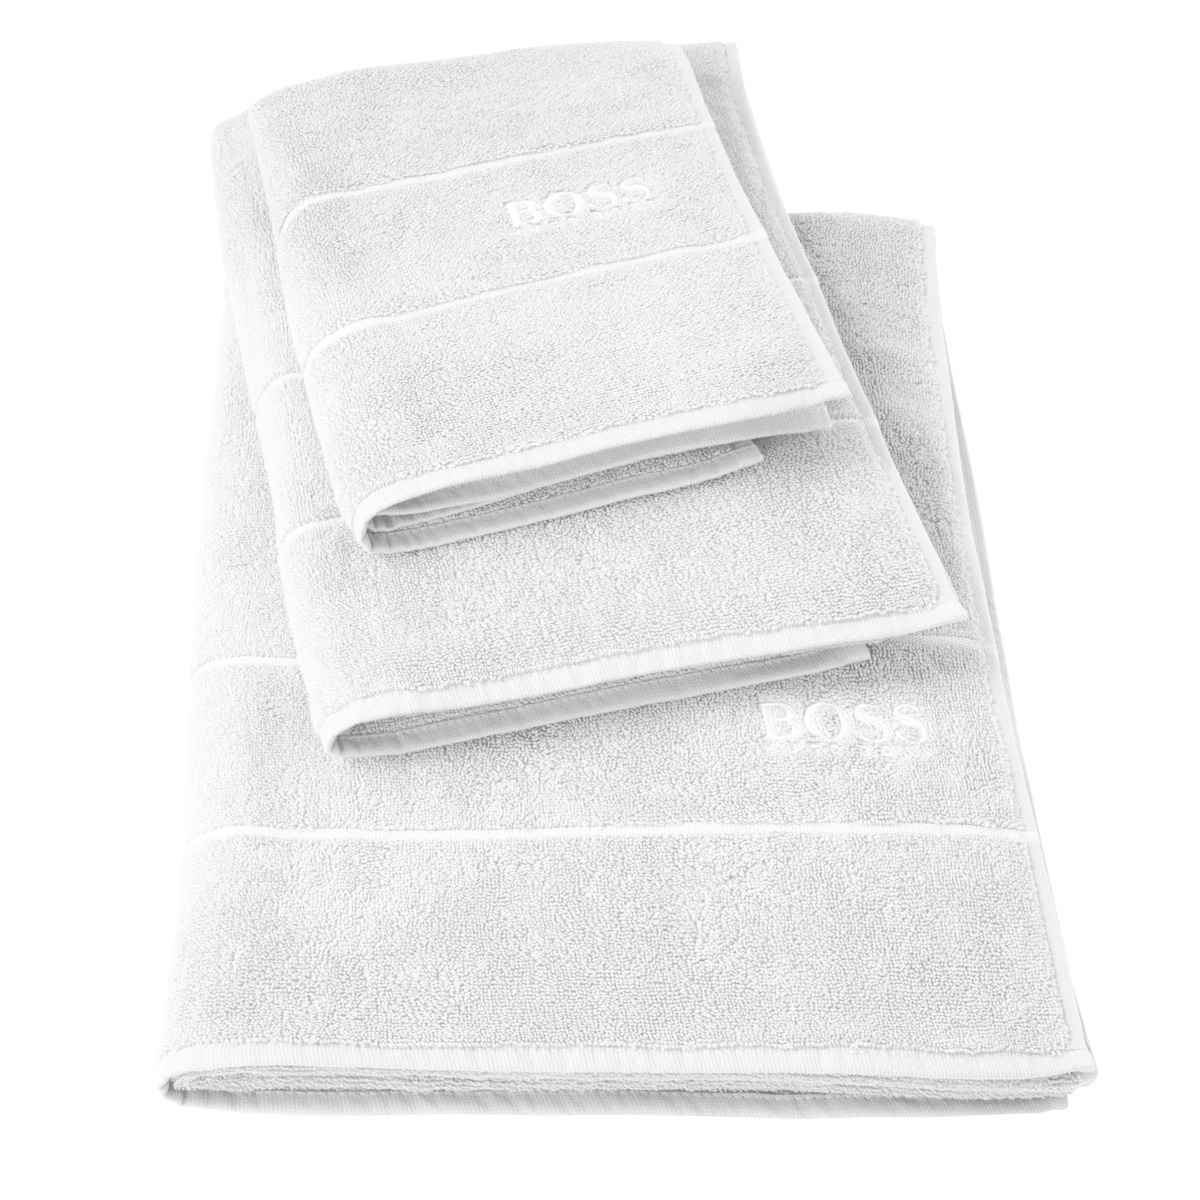 166412 - 1 - Serviette de bain PLAIN Ice - Boss Home.jpg